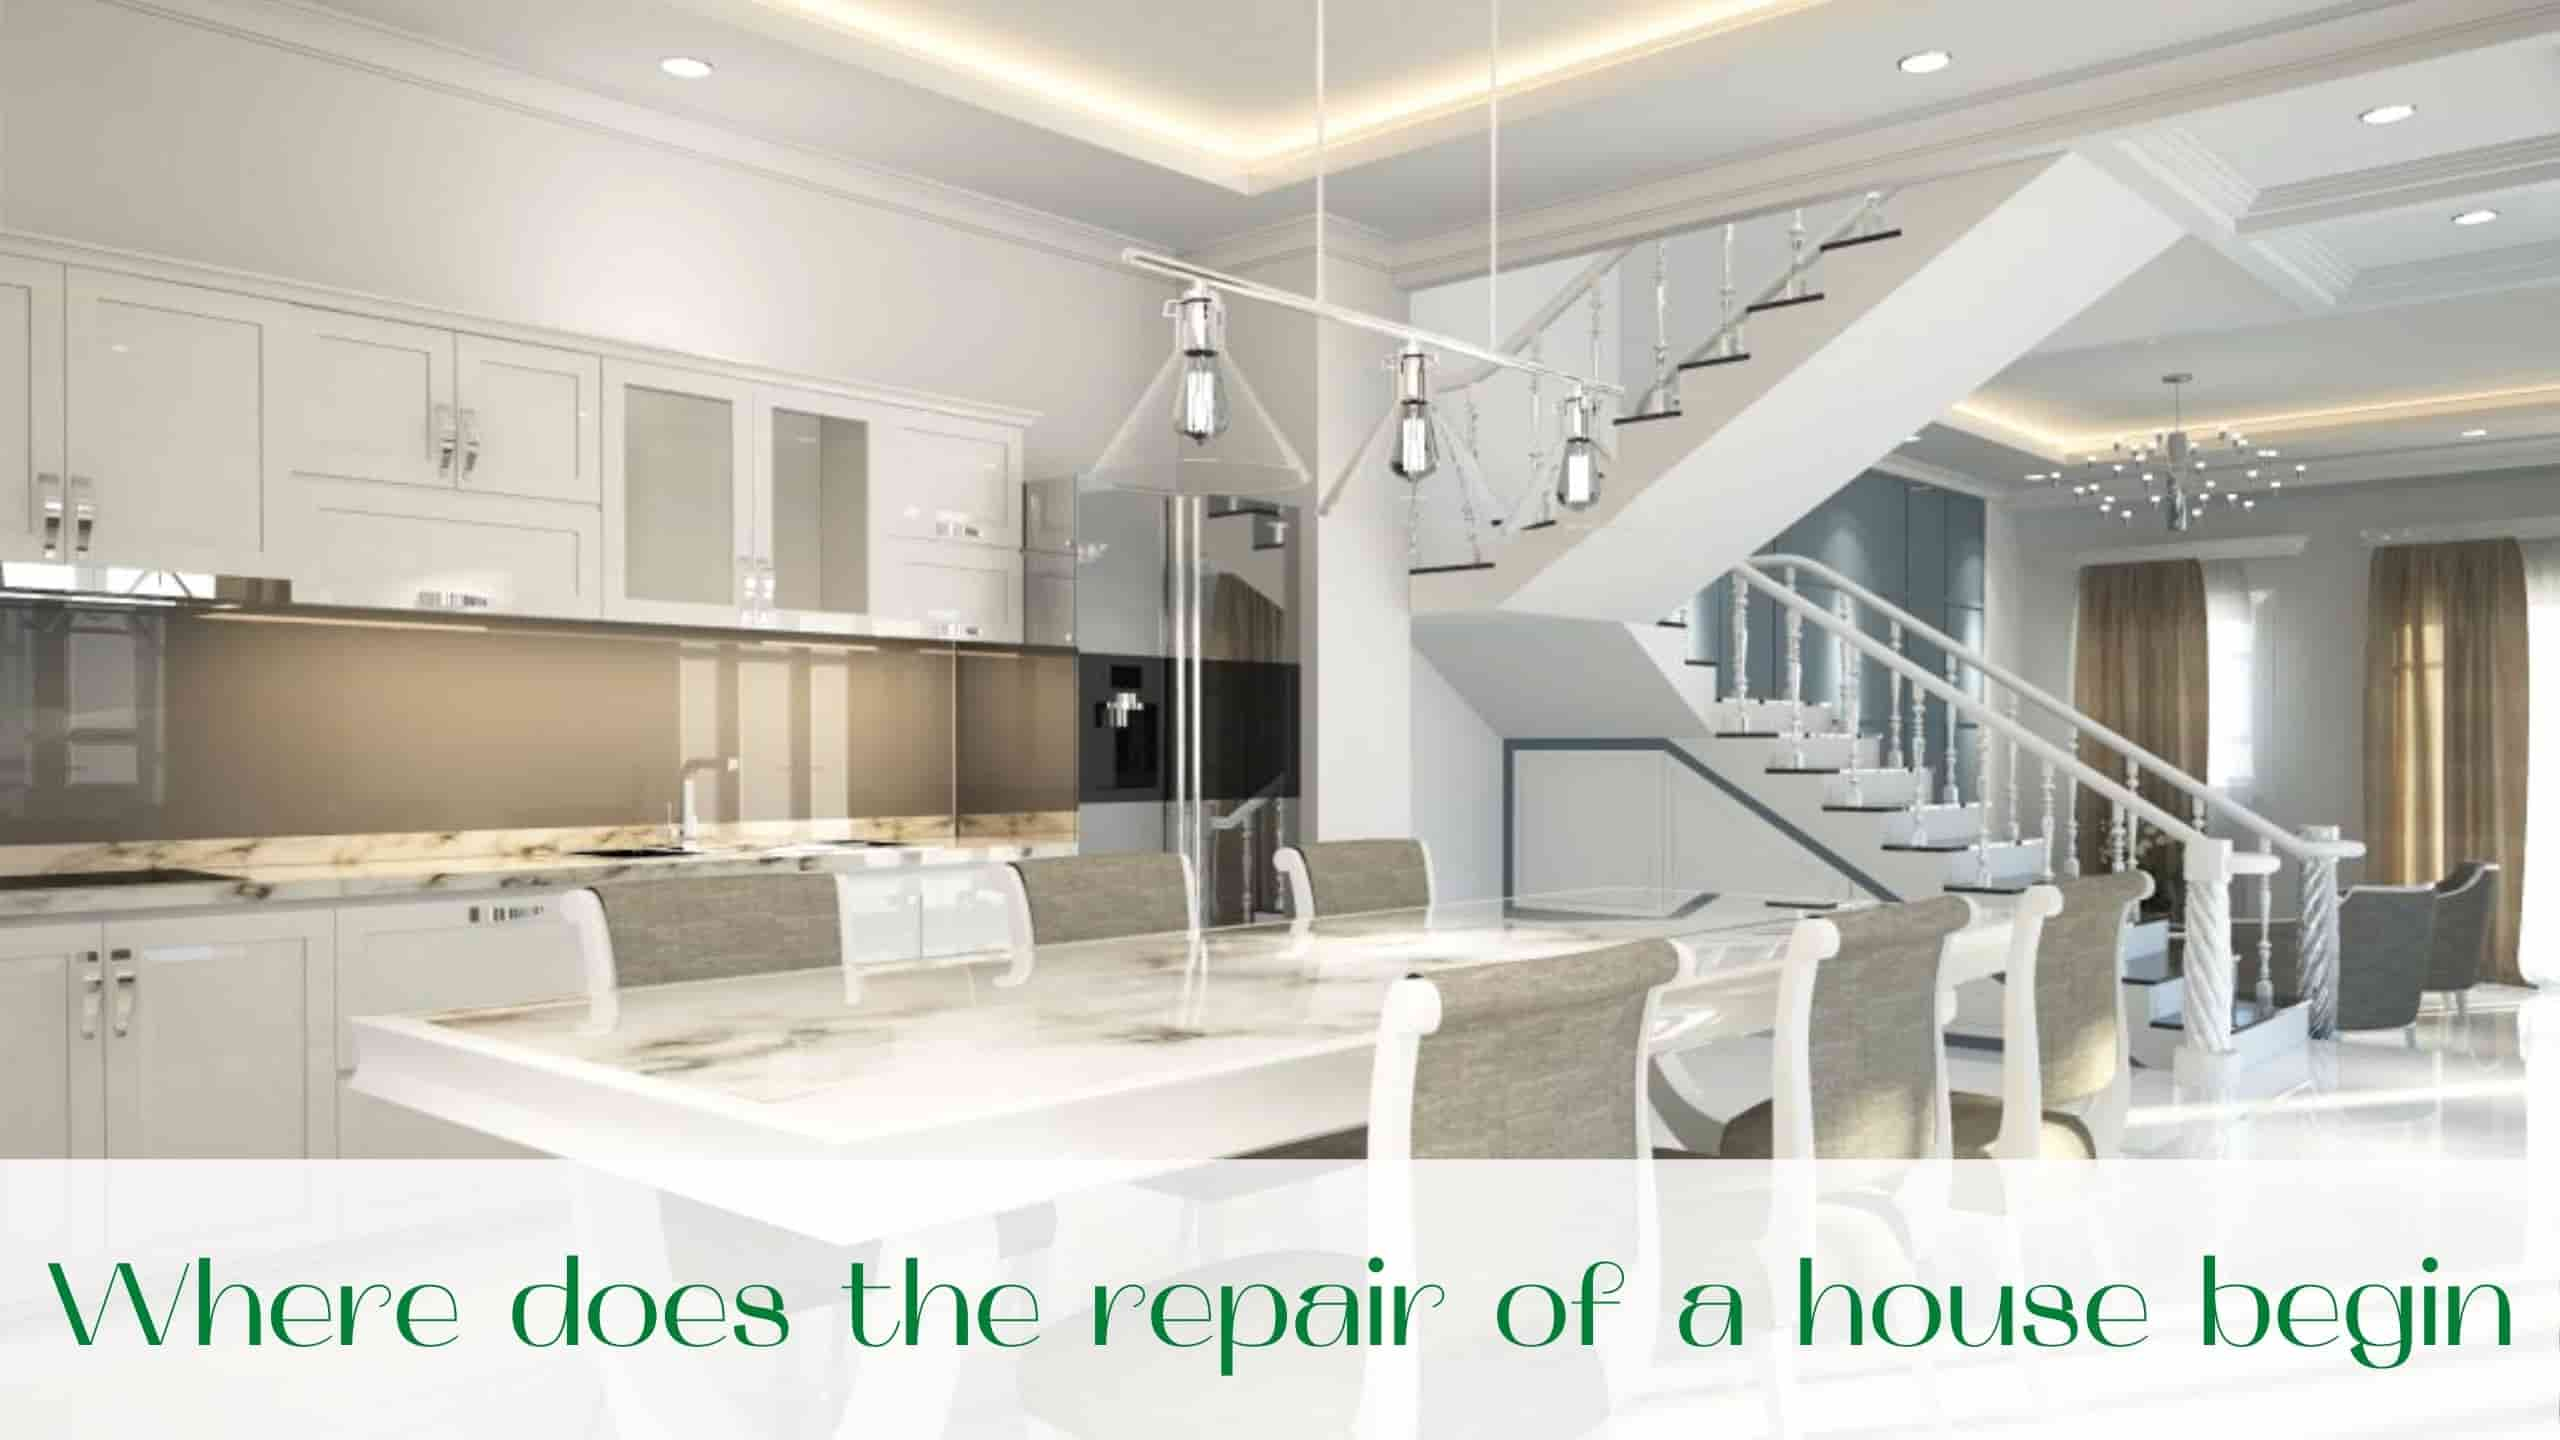 image-repair-of-a-house-in-North-York